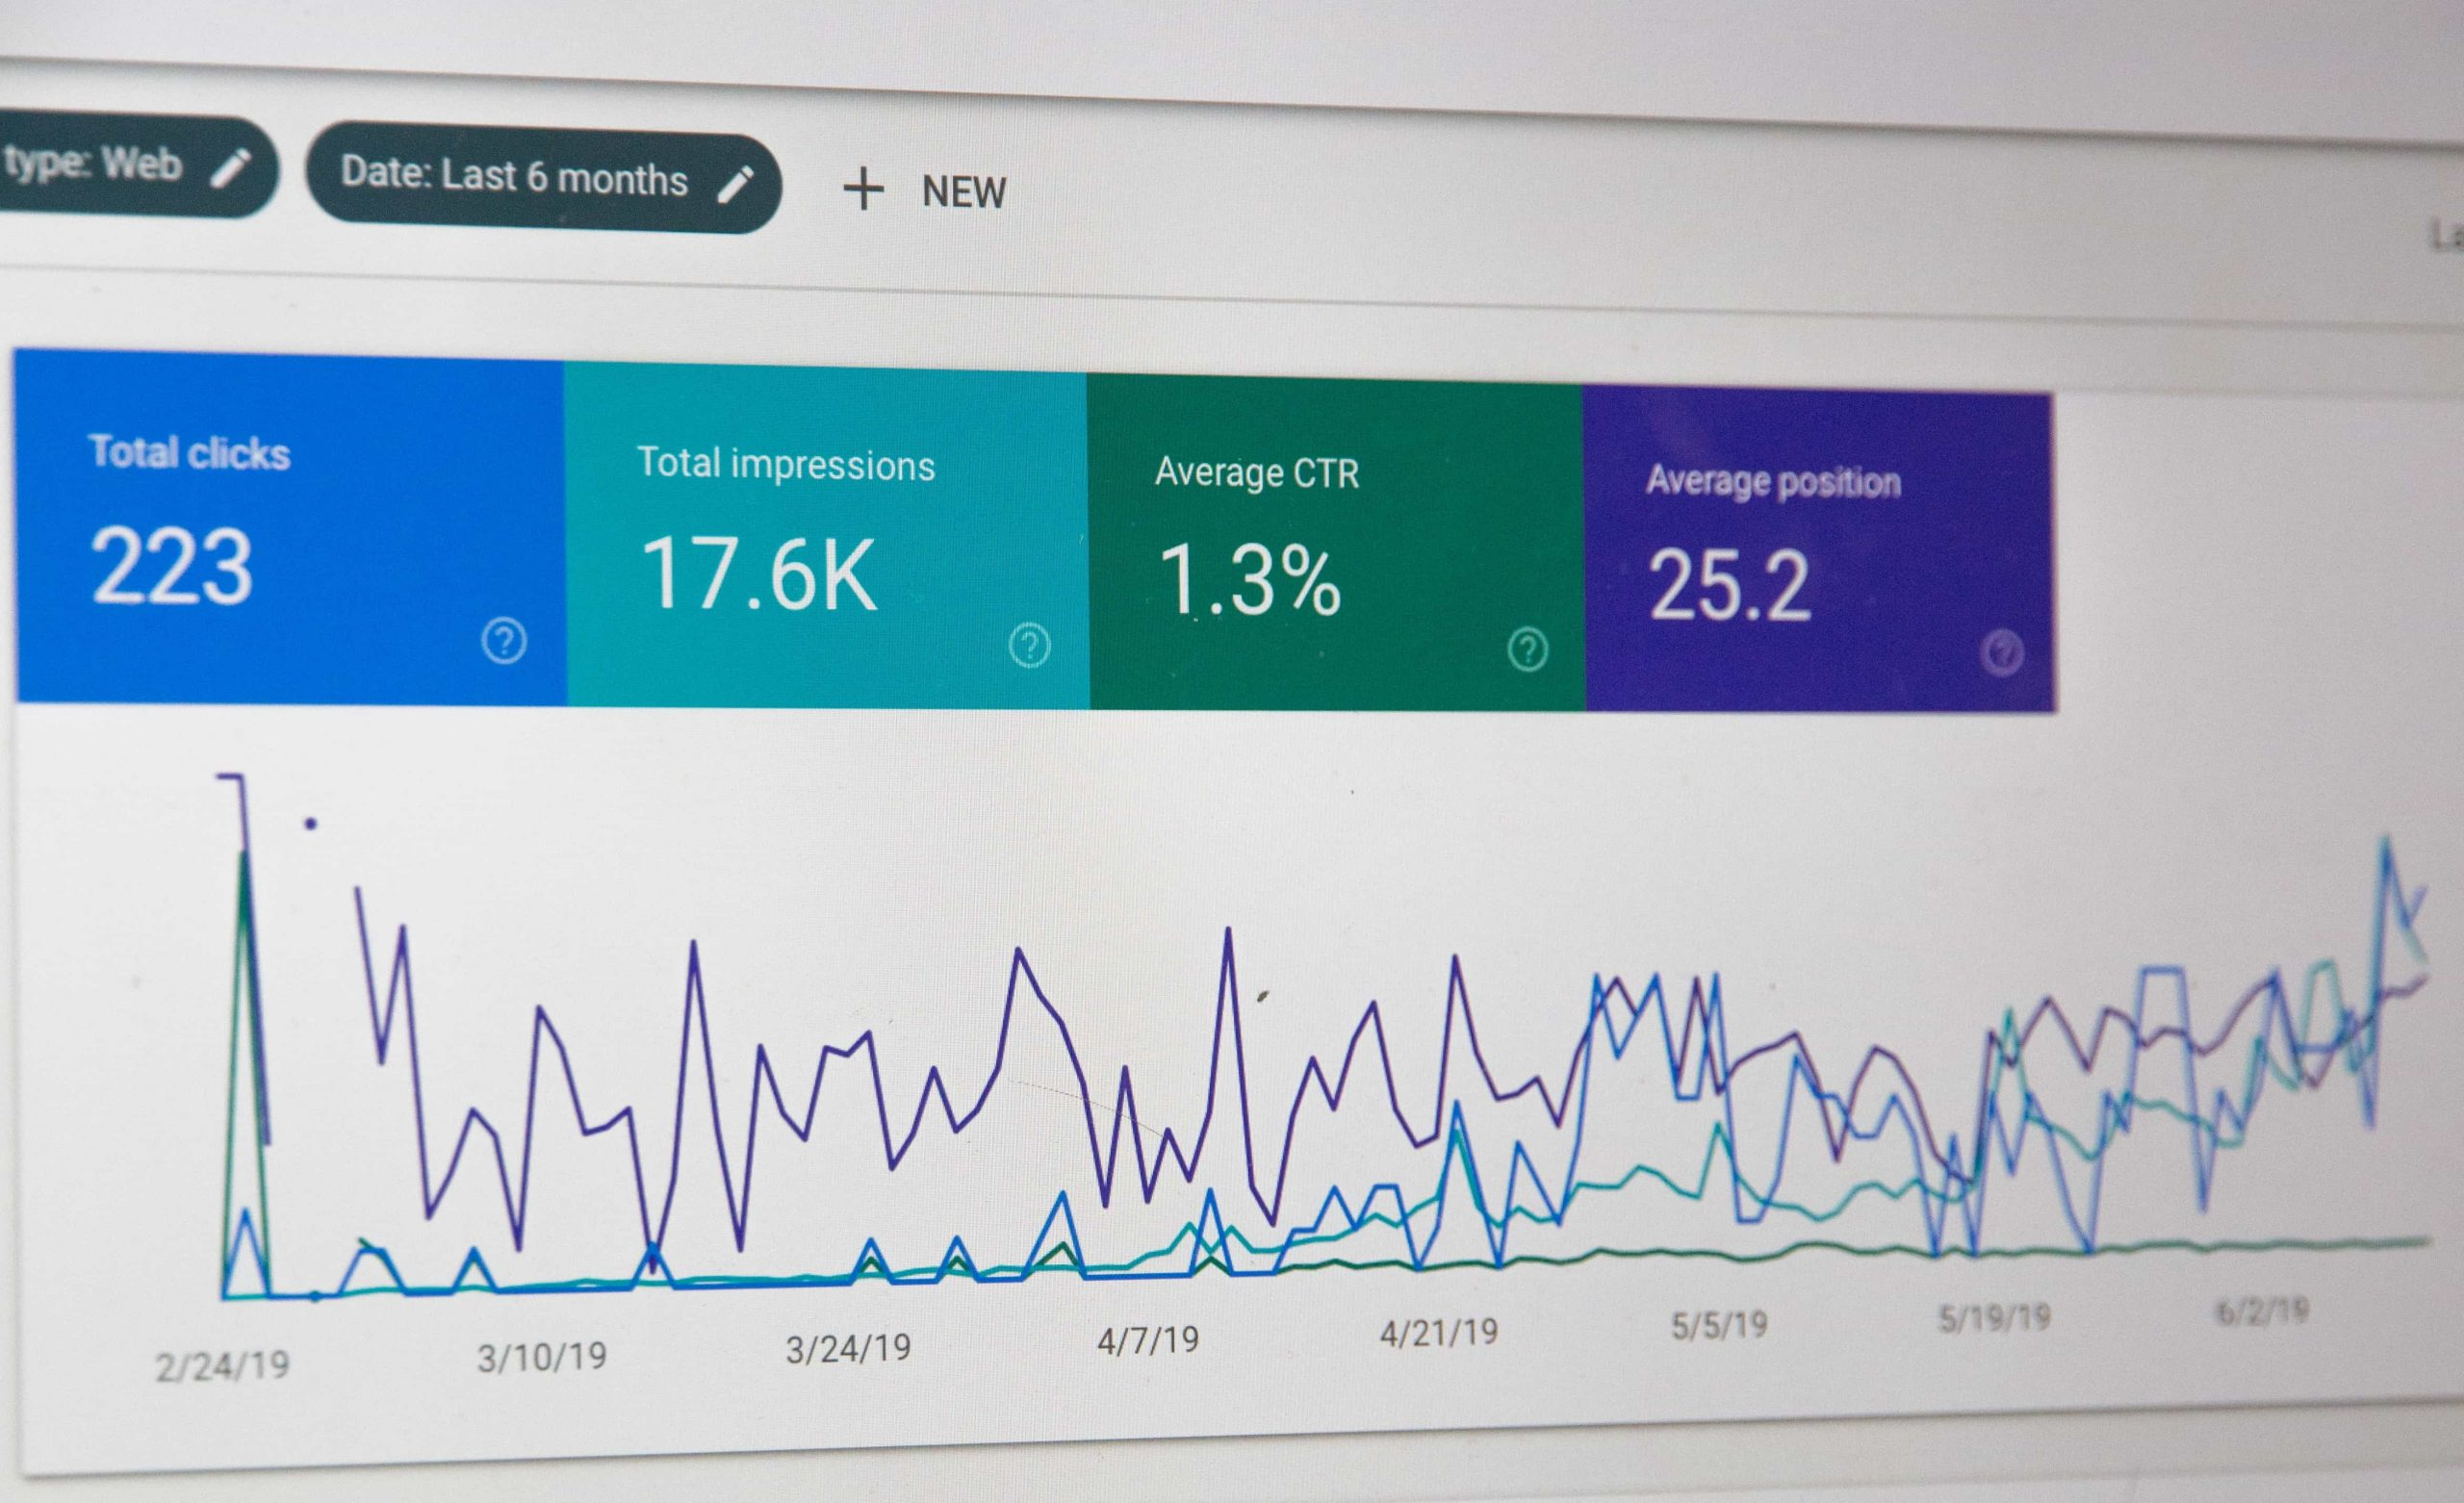 PPC data dashboard showing total clicks, total impressions, average CTR and average position